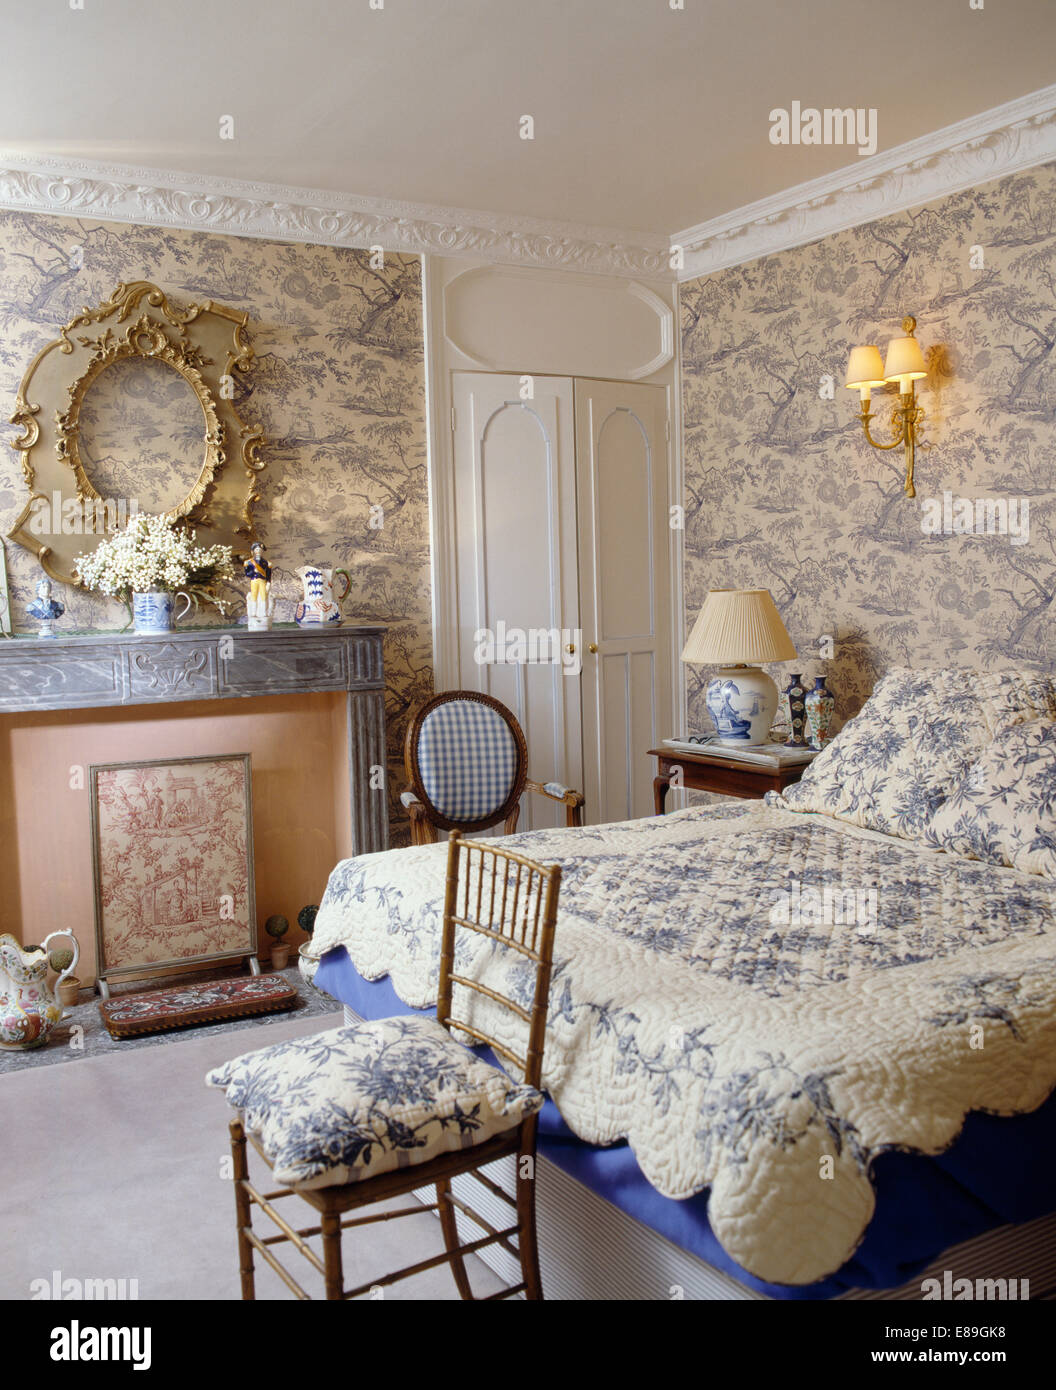 Tapete Im Bilderrahmen Toile De Jouy Wallpaper In Stockfotos And Toile De Jouy